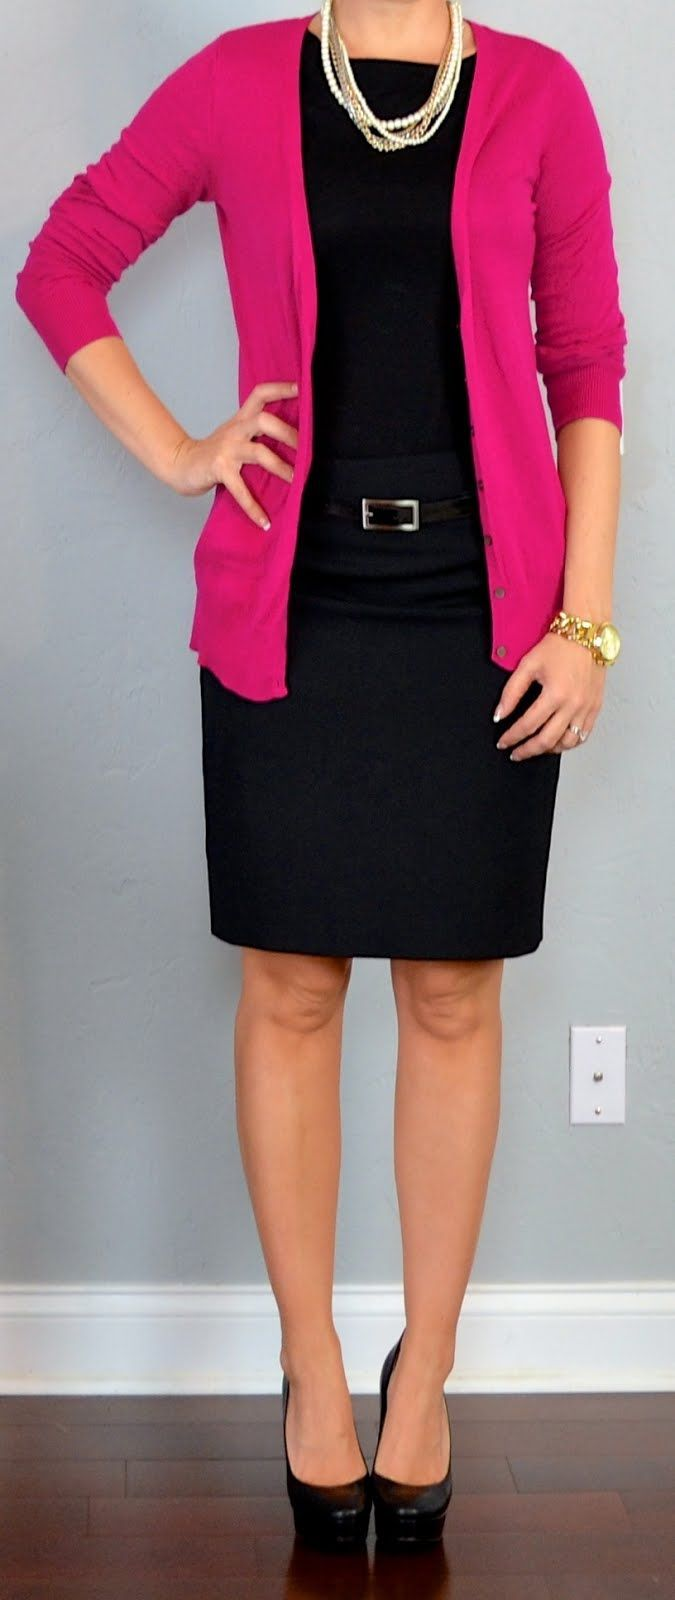 Outfit Posts: outfit posts: pink cardigan, black blouse, black pencil skirt - white blouse with blue stars, ladies silk blouses, long blouse tops *sponsored https://www.pinterest.com/blouses_blouse/ https://www.pinterest.com/explore/blouses/ https://www.pinterest.com/blouses_blouse/black-blouse/ https://www.stylewe.com/category/blouses-73_113